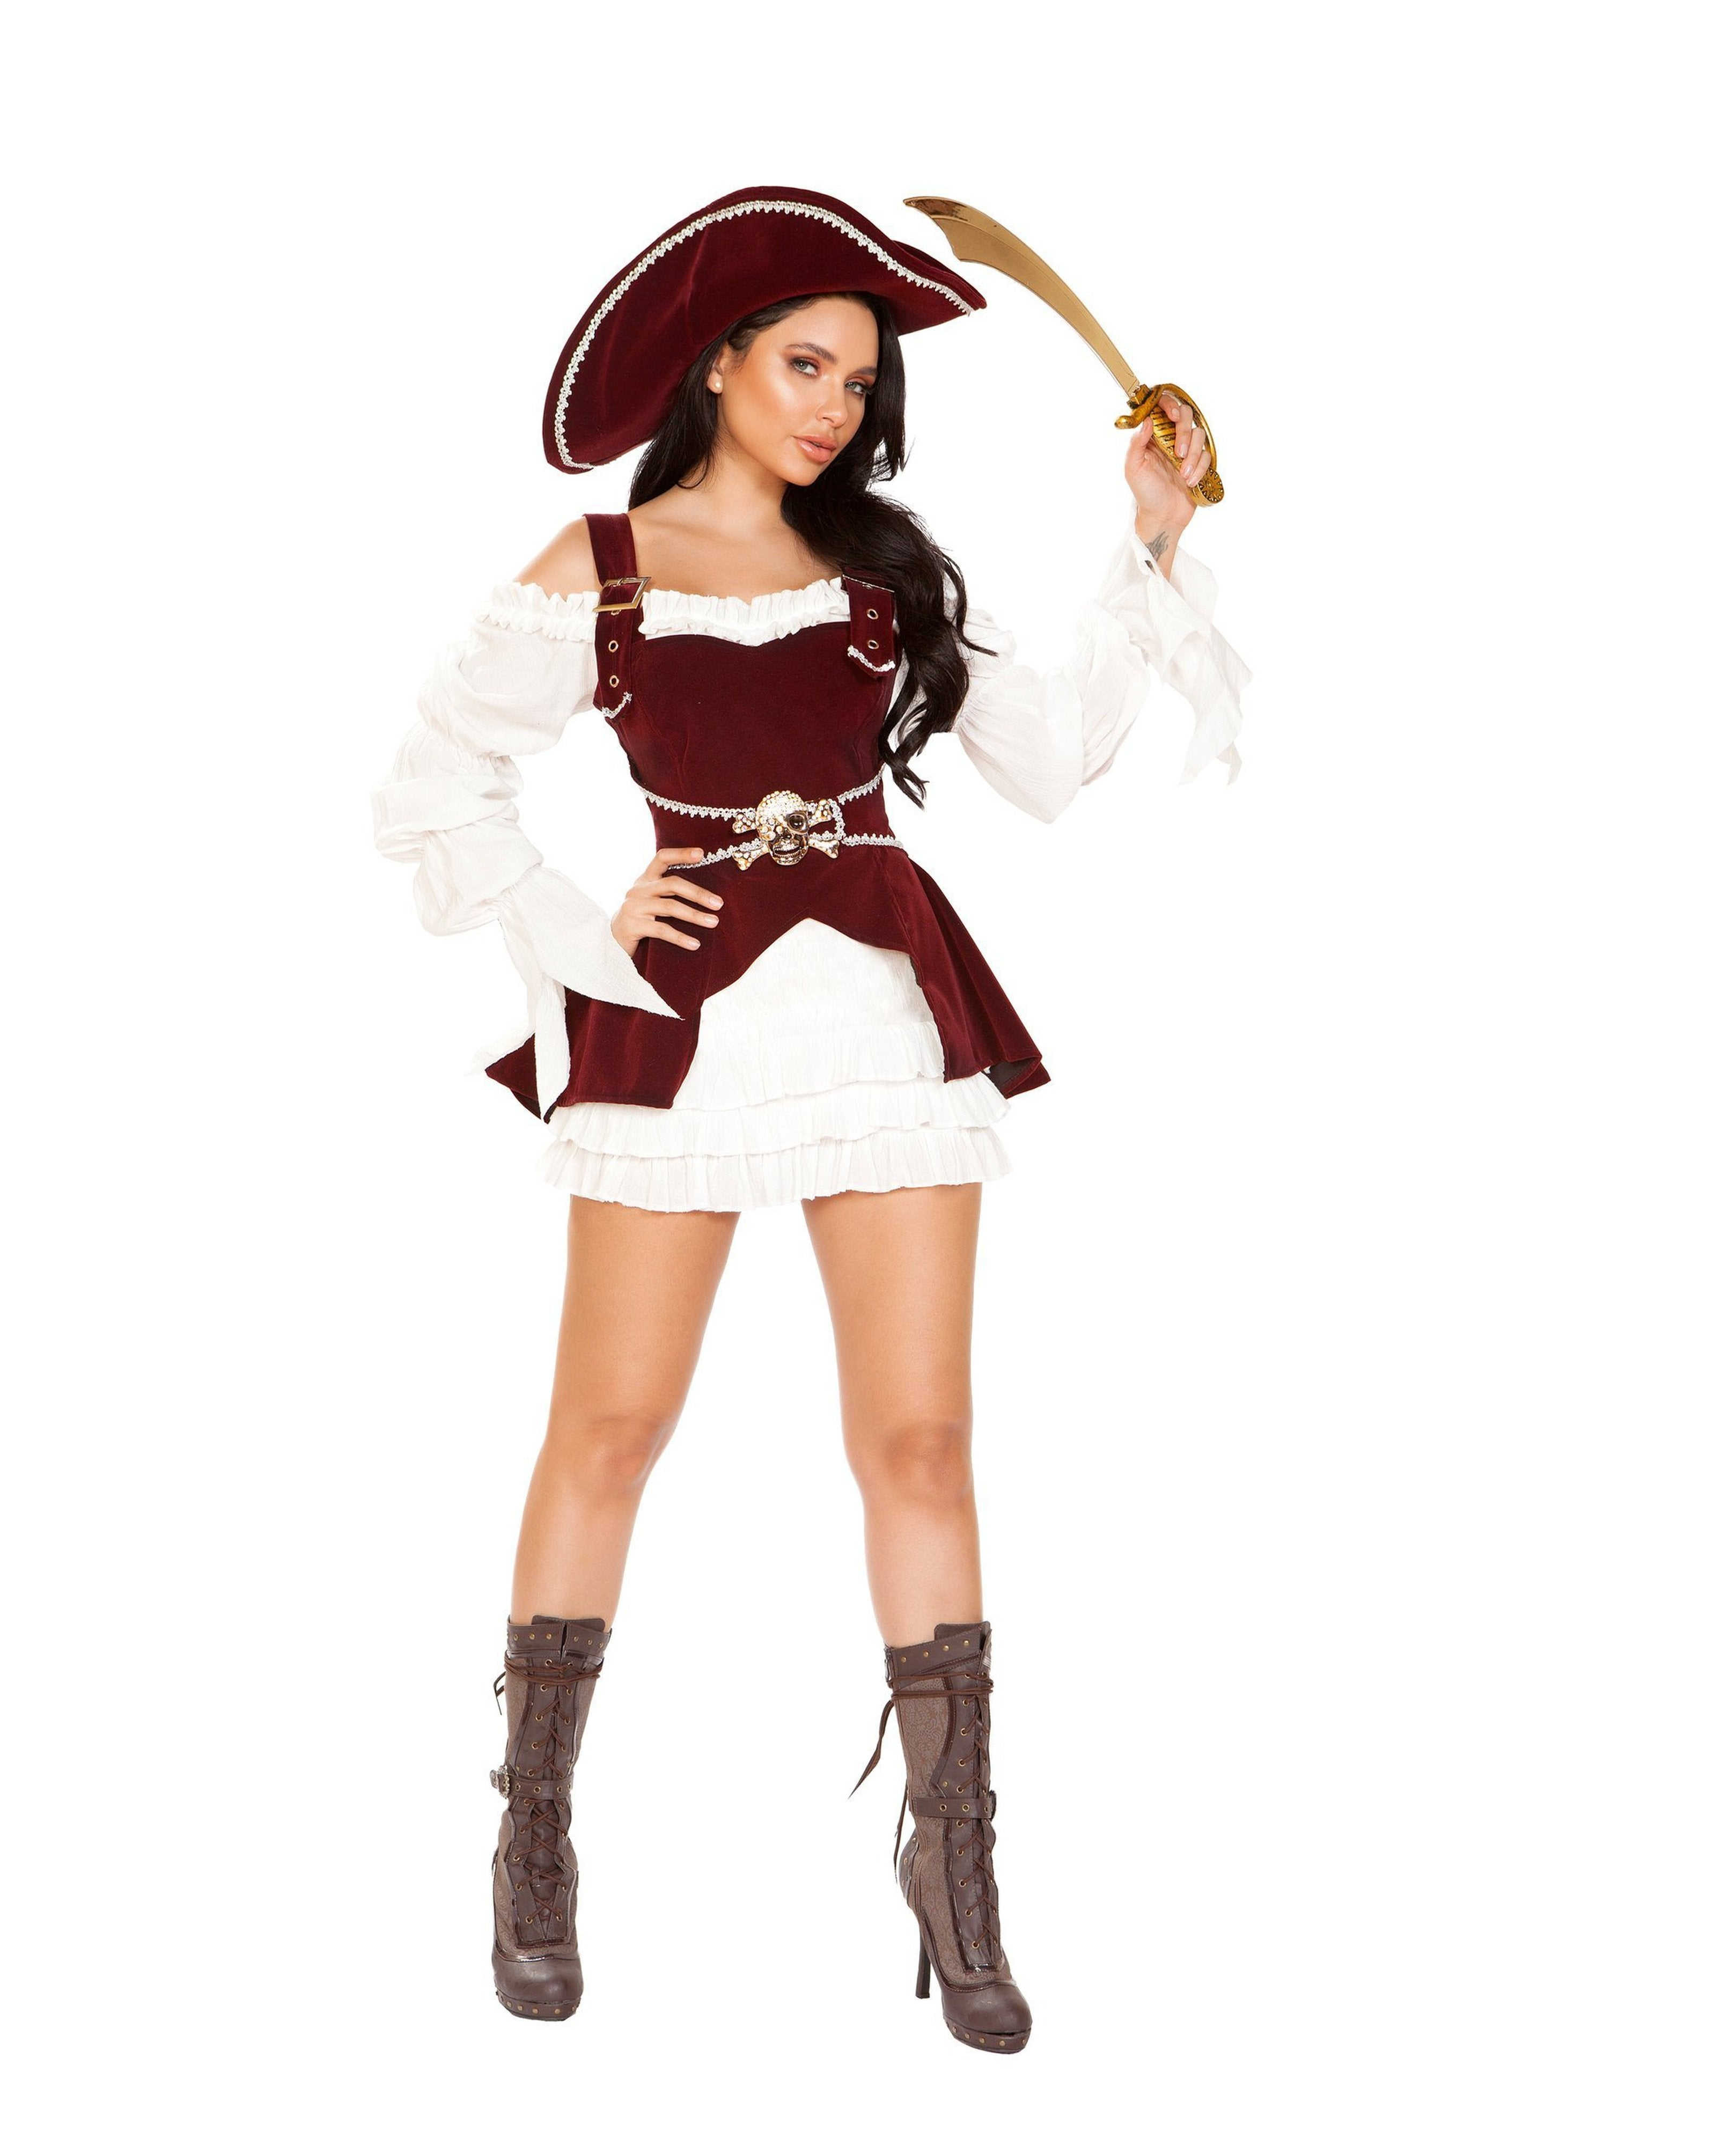 Armed Pirate Sexy Costume costumes Size SmallColor White/BurgundyNakees